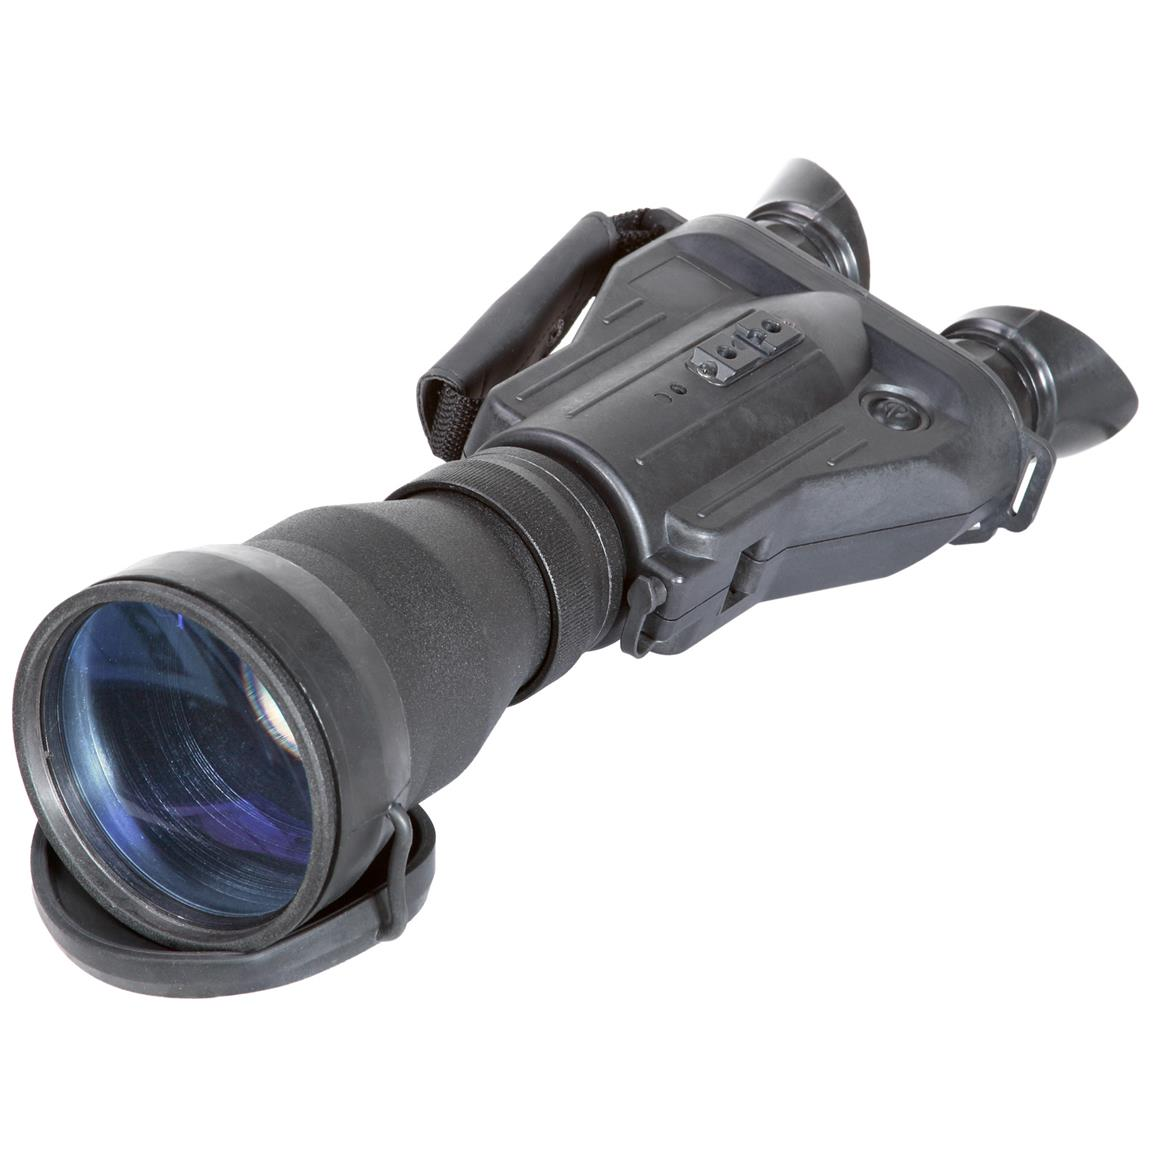 Armasight Discovery 8X Alpha Gen 3 Night Vision Binoculars